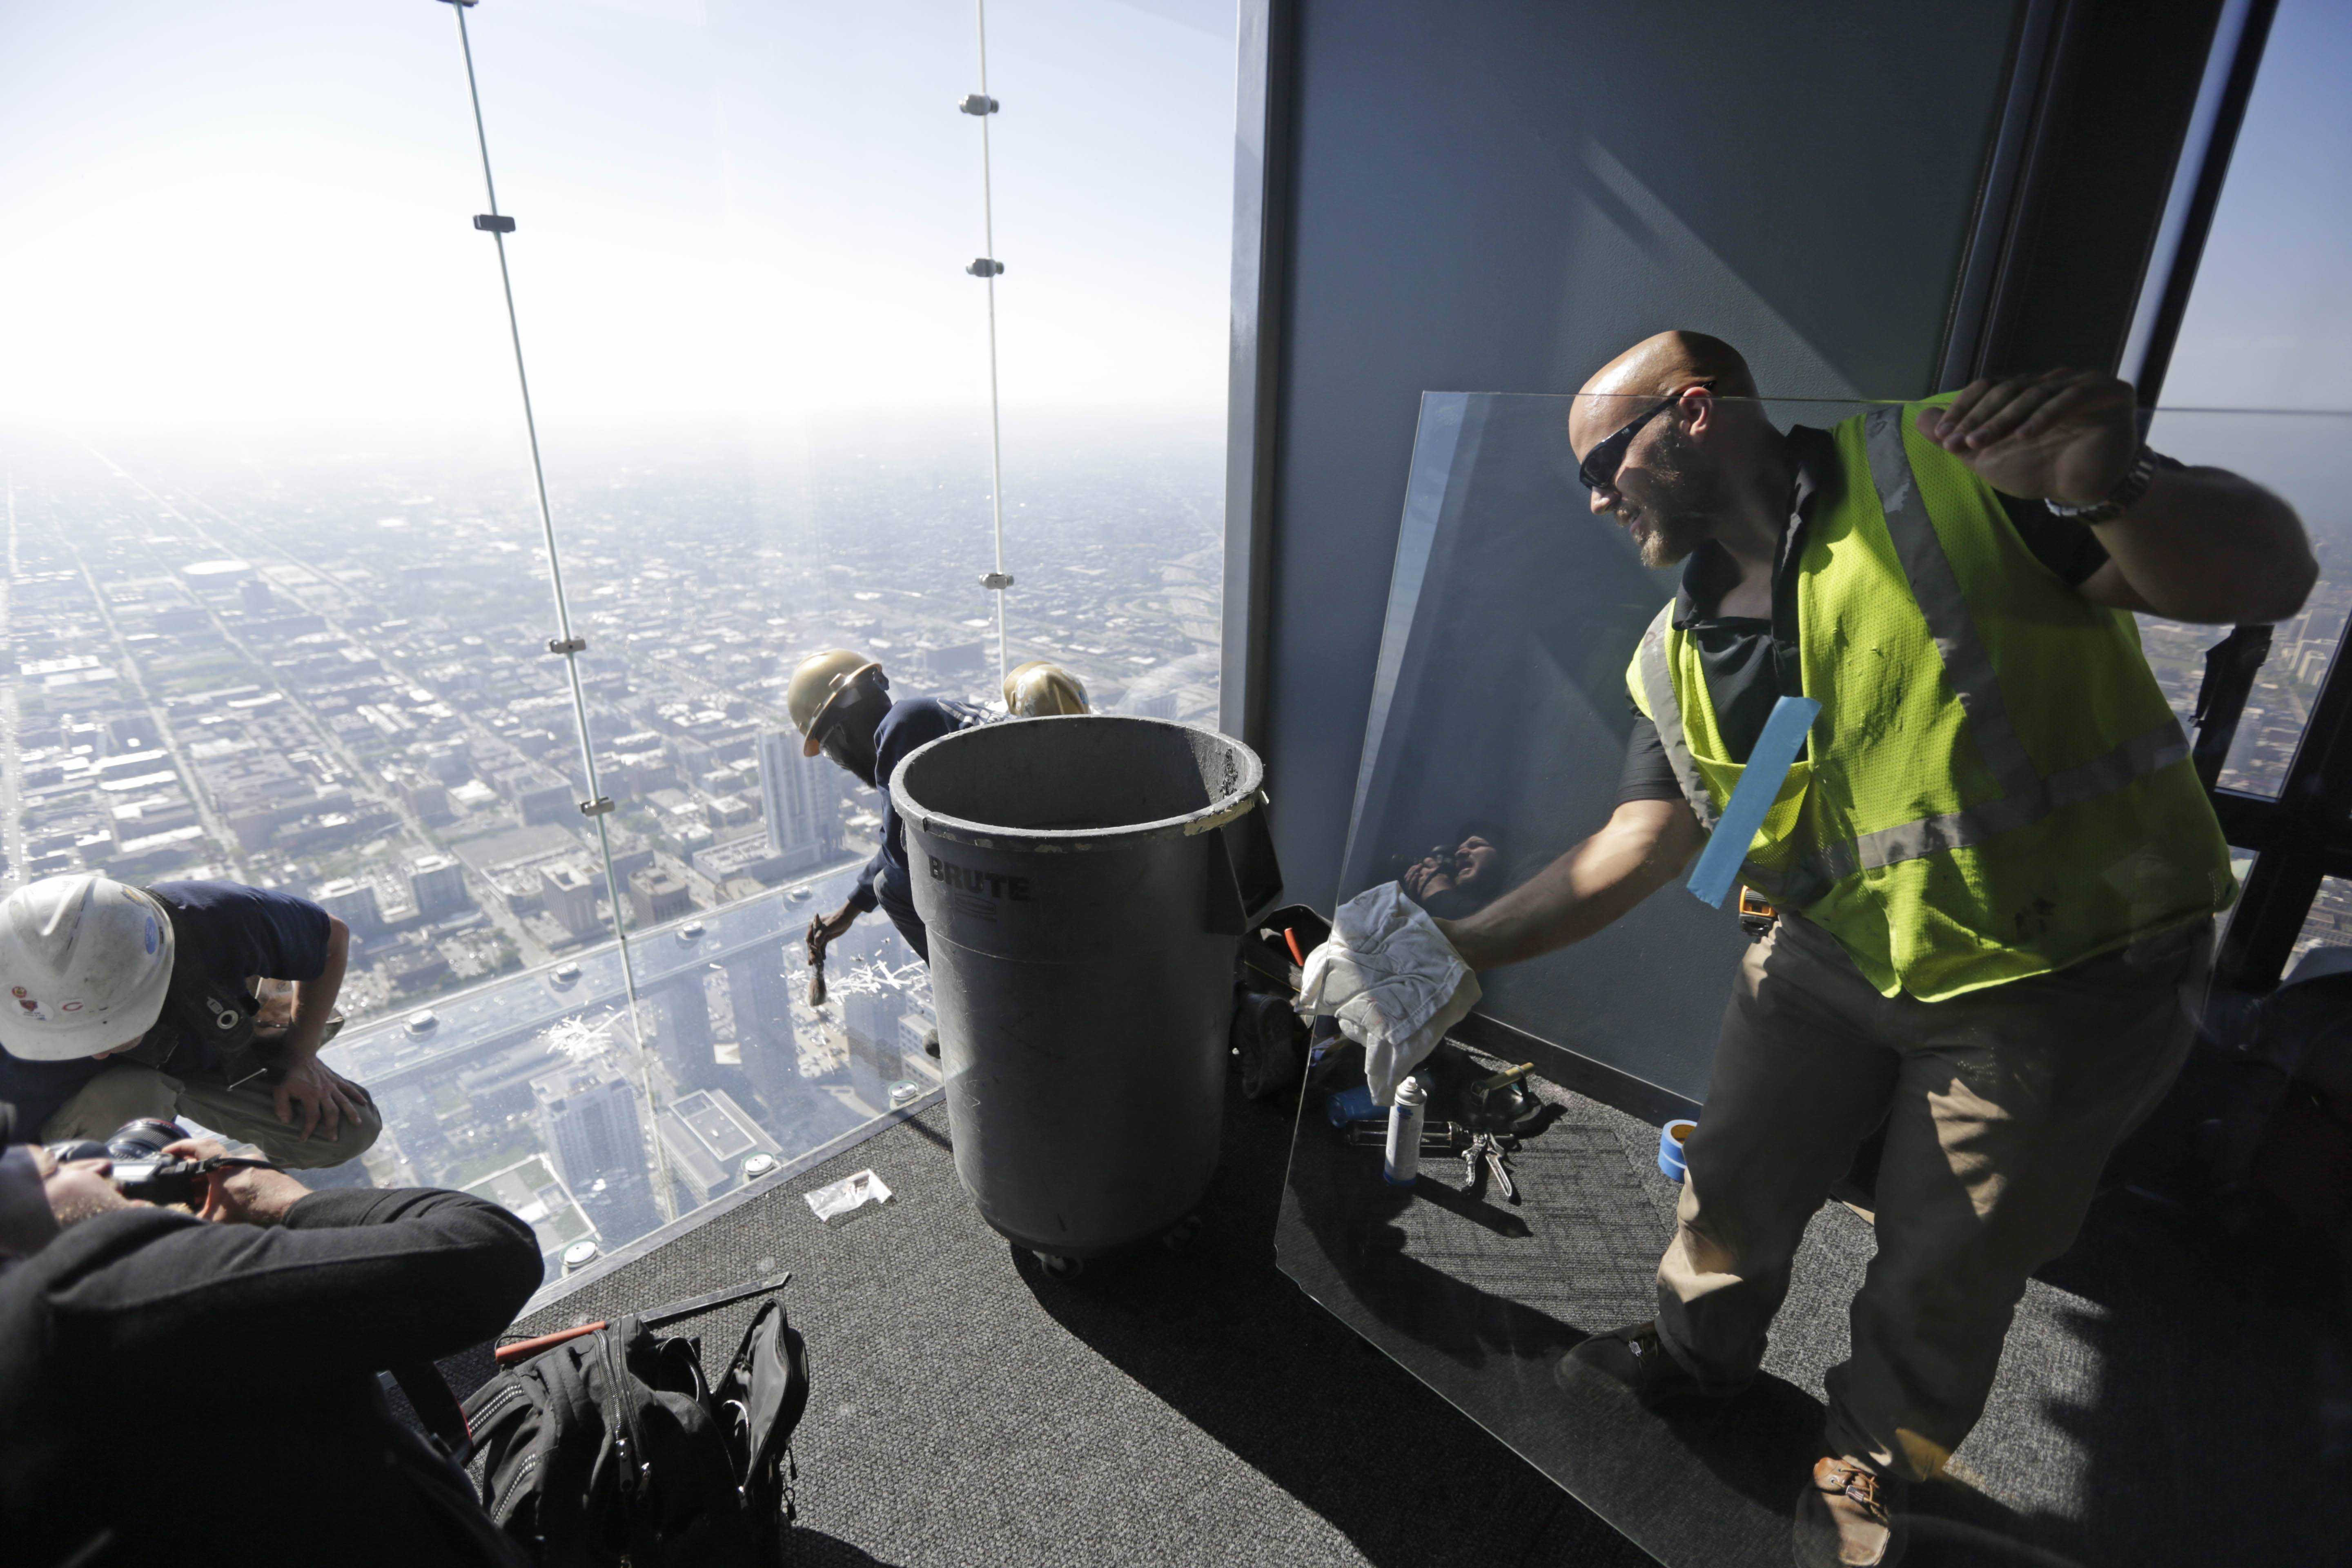 Glaziers from MTH Industries prepare Thursday to replace a layer of protective coating on the floor a transparent ledge that juts out from the 103rd floor of the Willis Tower in Chicago.